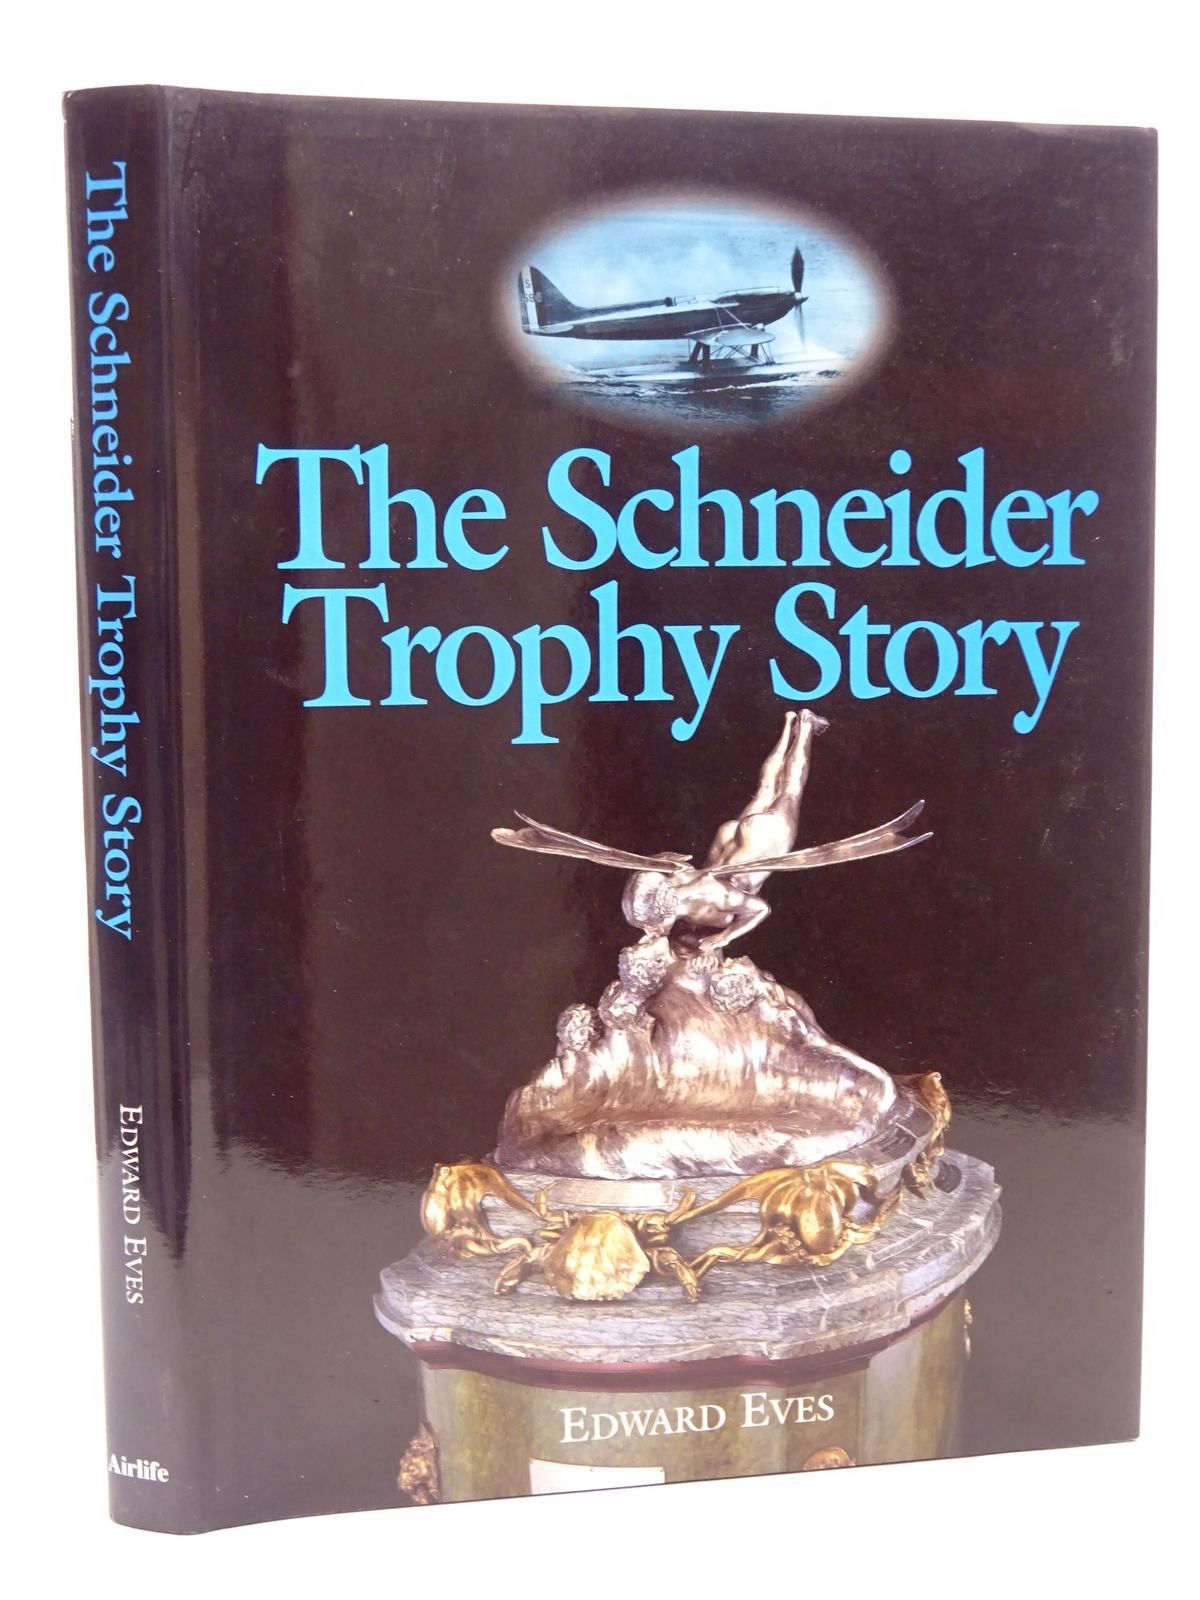 Photo of THE SCHNEIDER TROPHY STORY written by Eves, Edward published by Airlife (STOCK CODE: 1610220)  for sale by Stella & Rose's Books